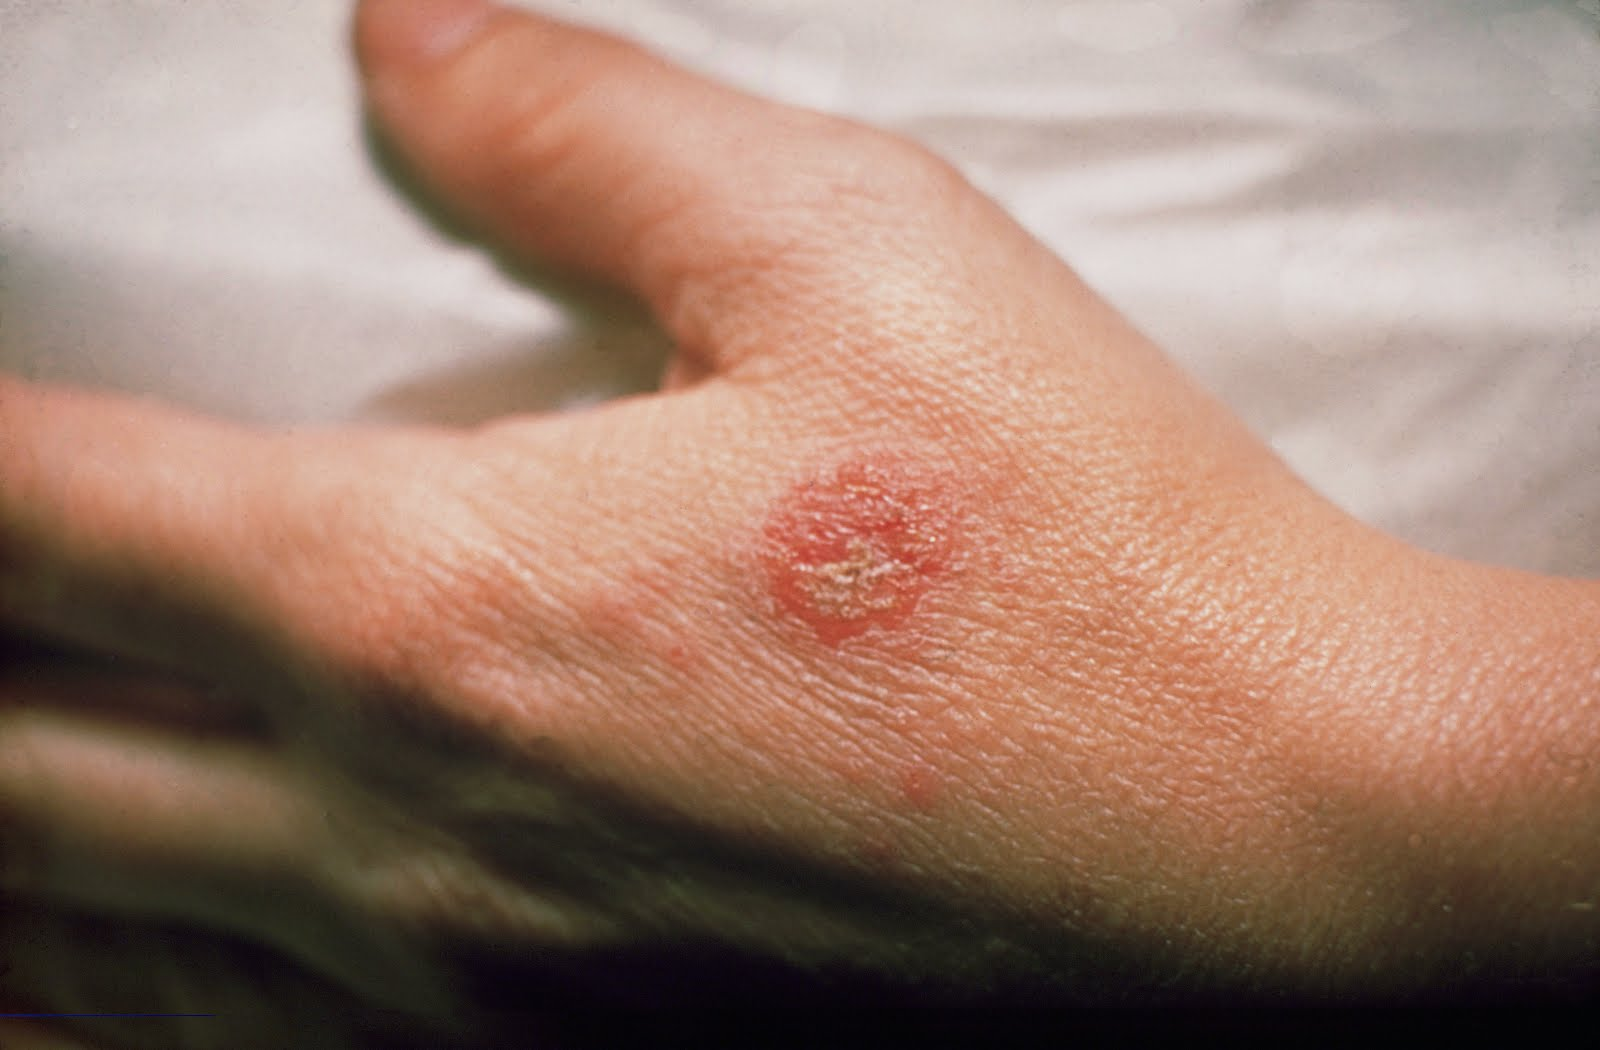 what are the main causes of eczema? image